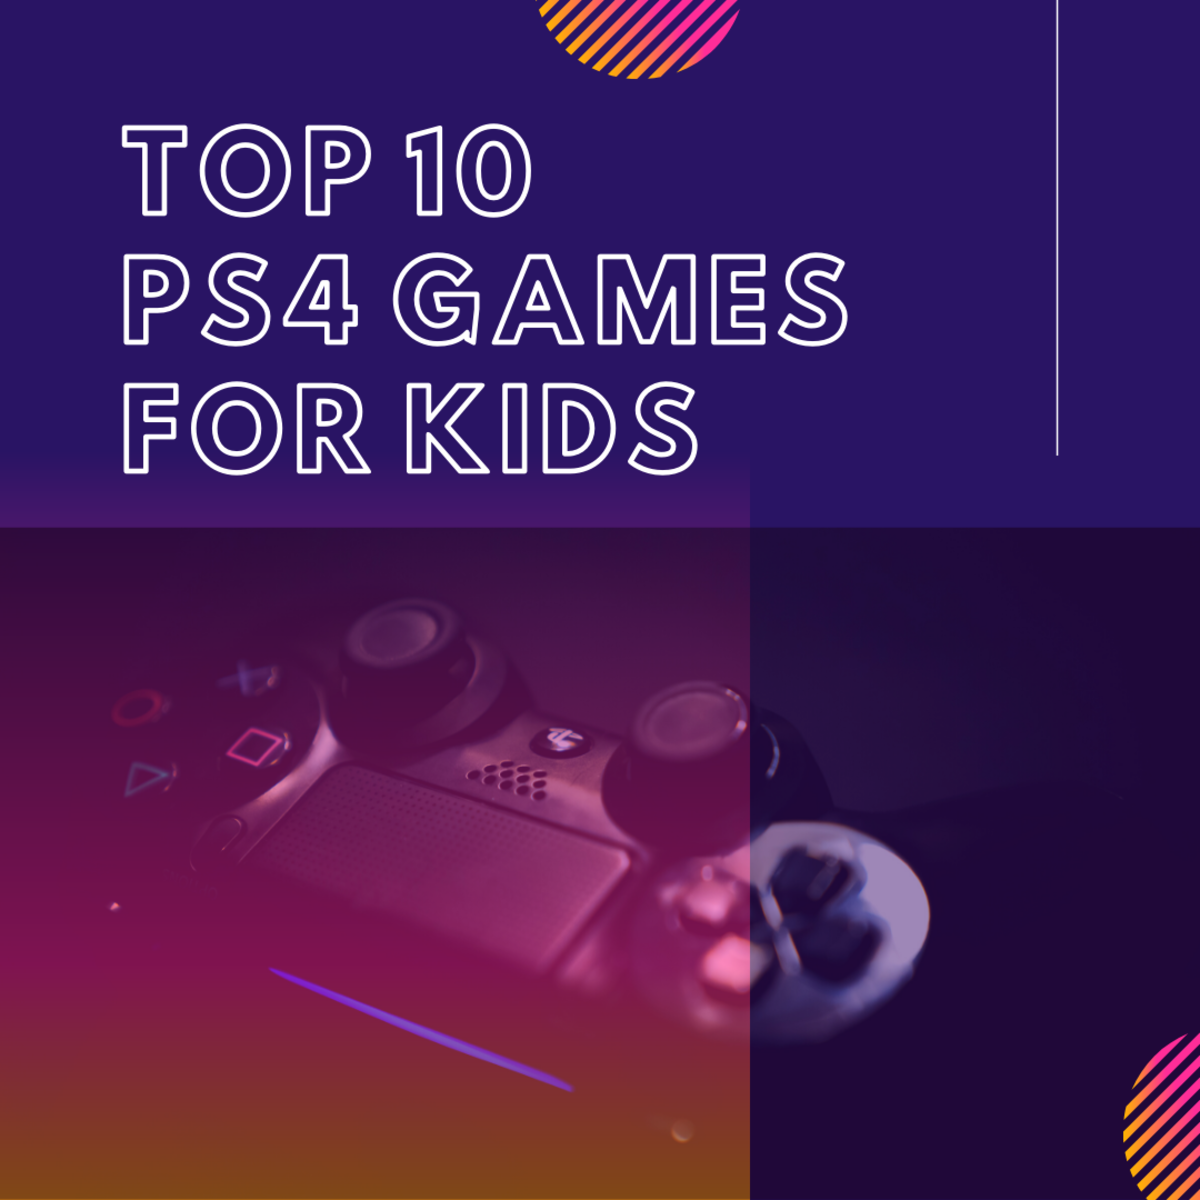 10 Best PS4 Games for Kids